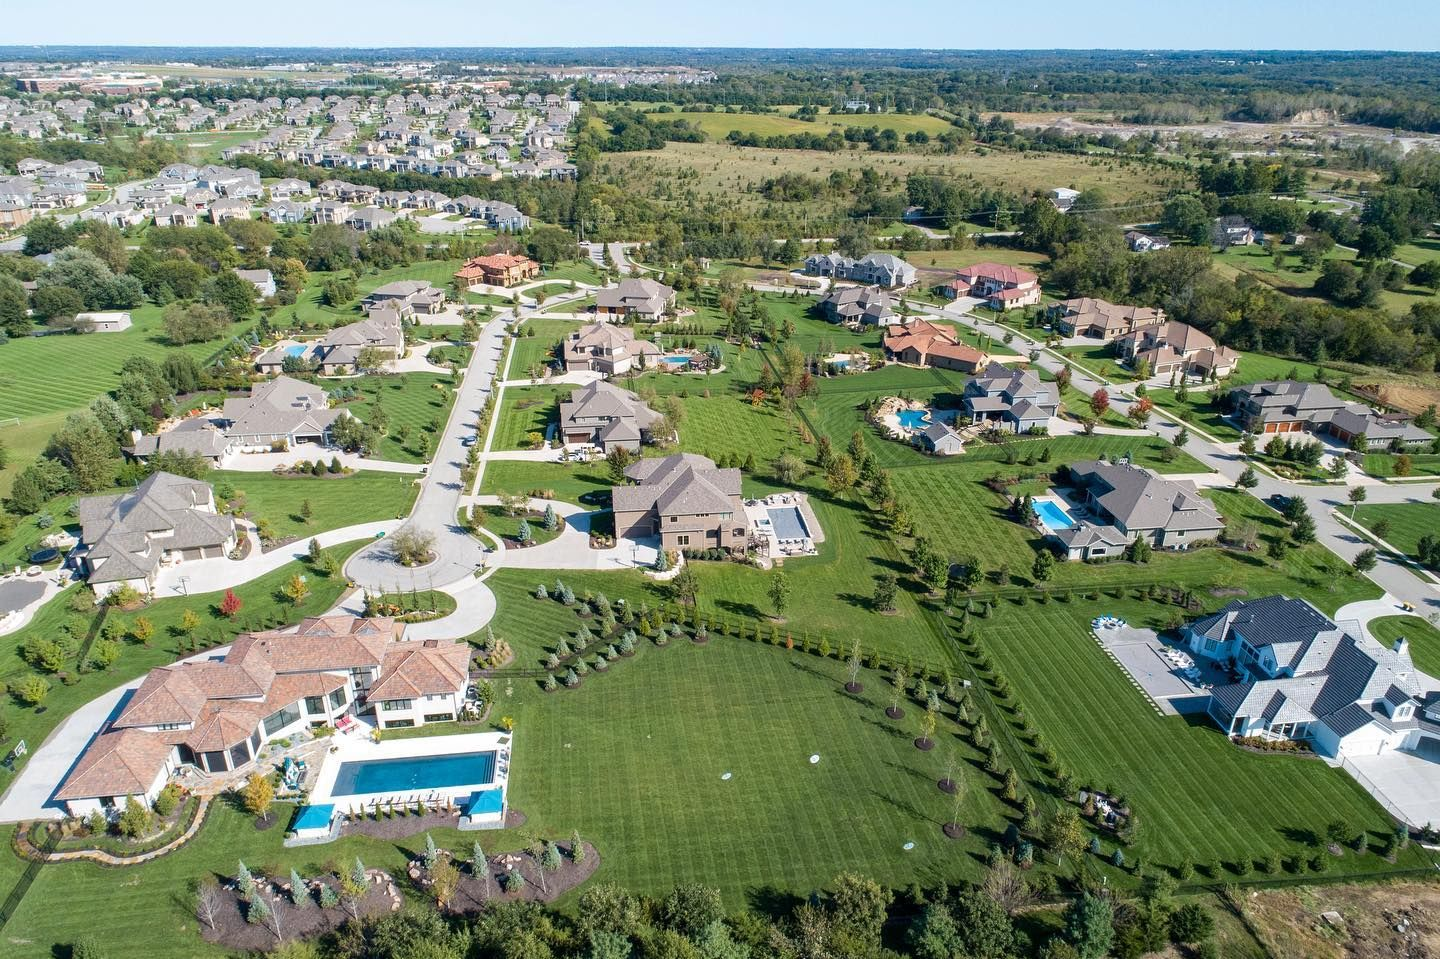 Our Beautiful Development The Farm At Garnet Hill Lots Of Awesome Things Happening Here Quinnkc Qu Overland Park Ks Overland Park Real Estate